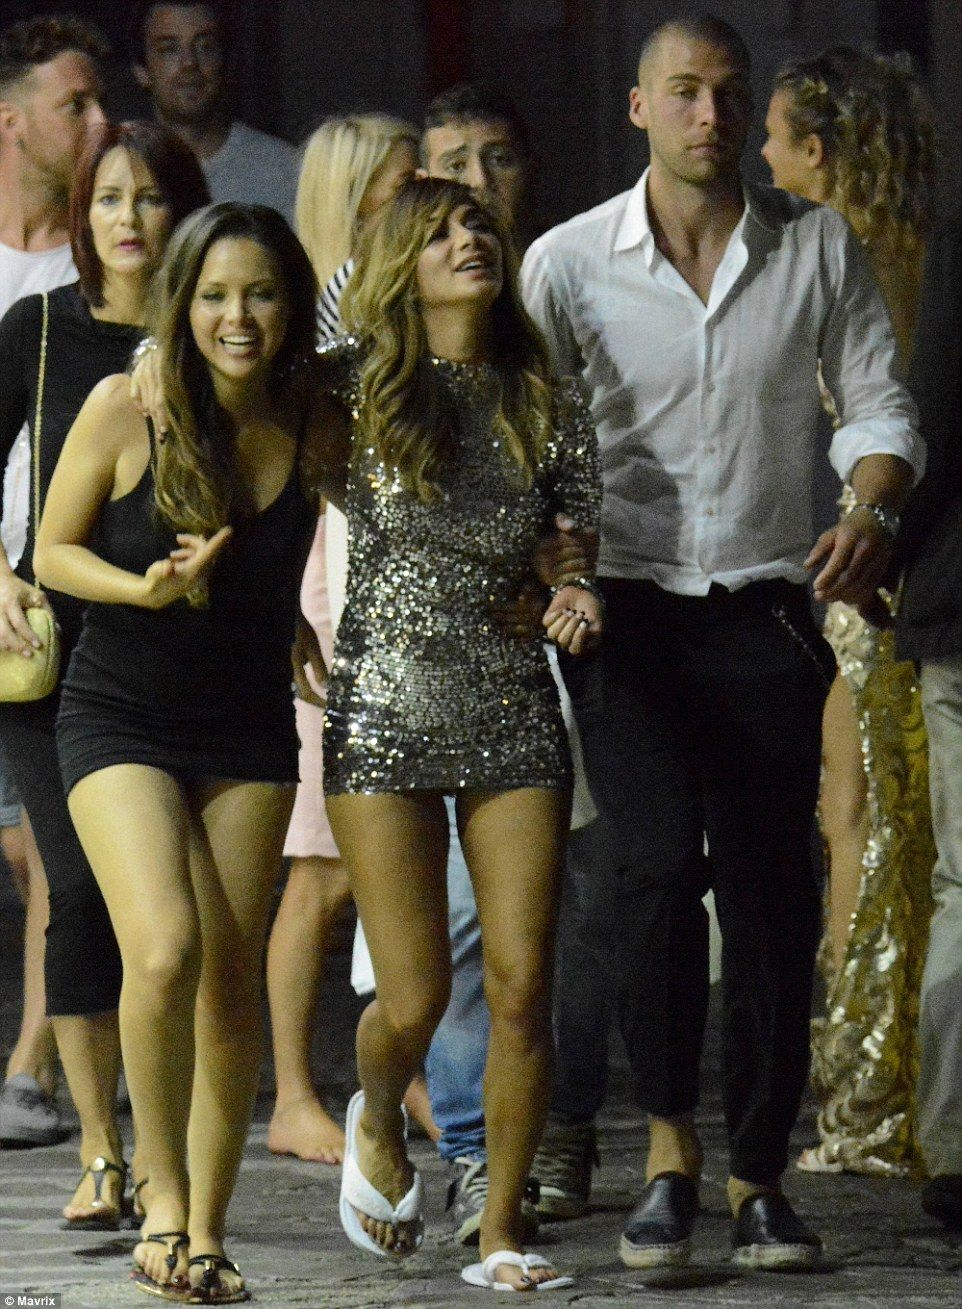 Holiday Flirtation In Recent Days Nicole Has Been Spotted Kissing Hunky Footballer Pajtim Kasami